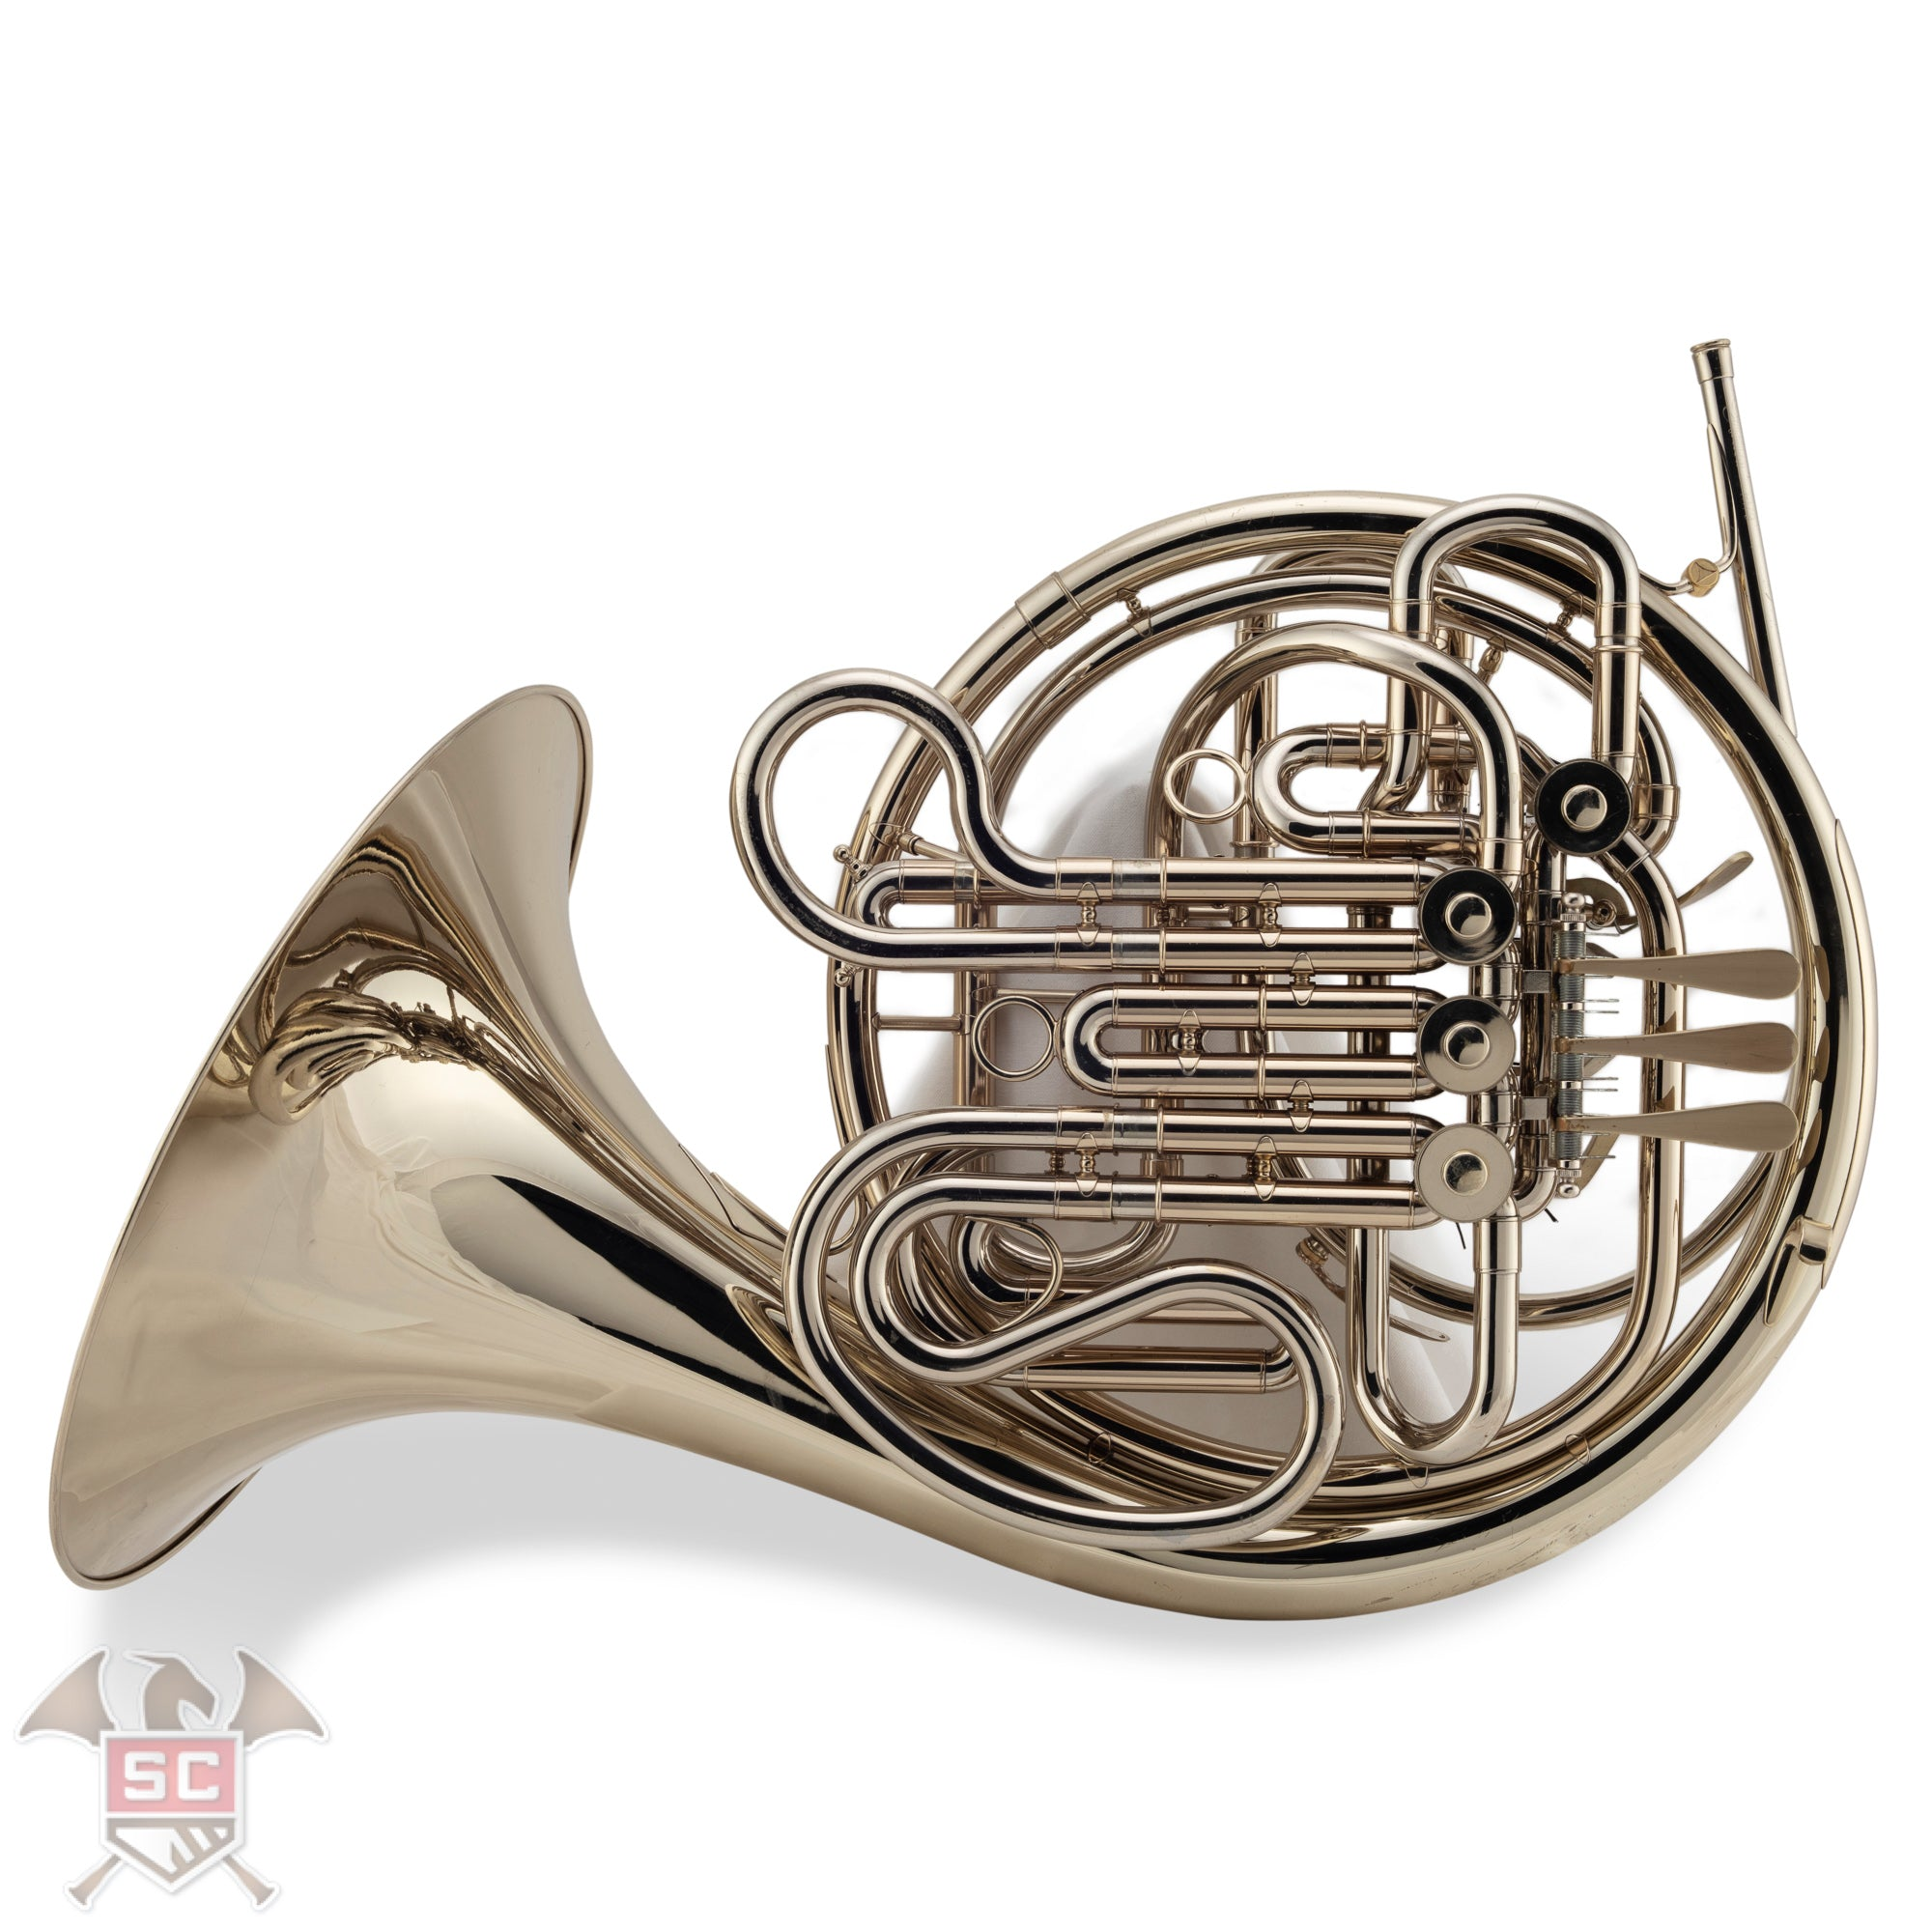 Used Holton H-179 double french horn SN#704787